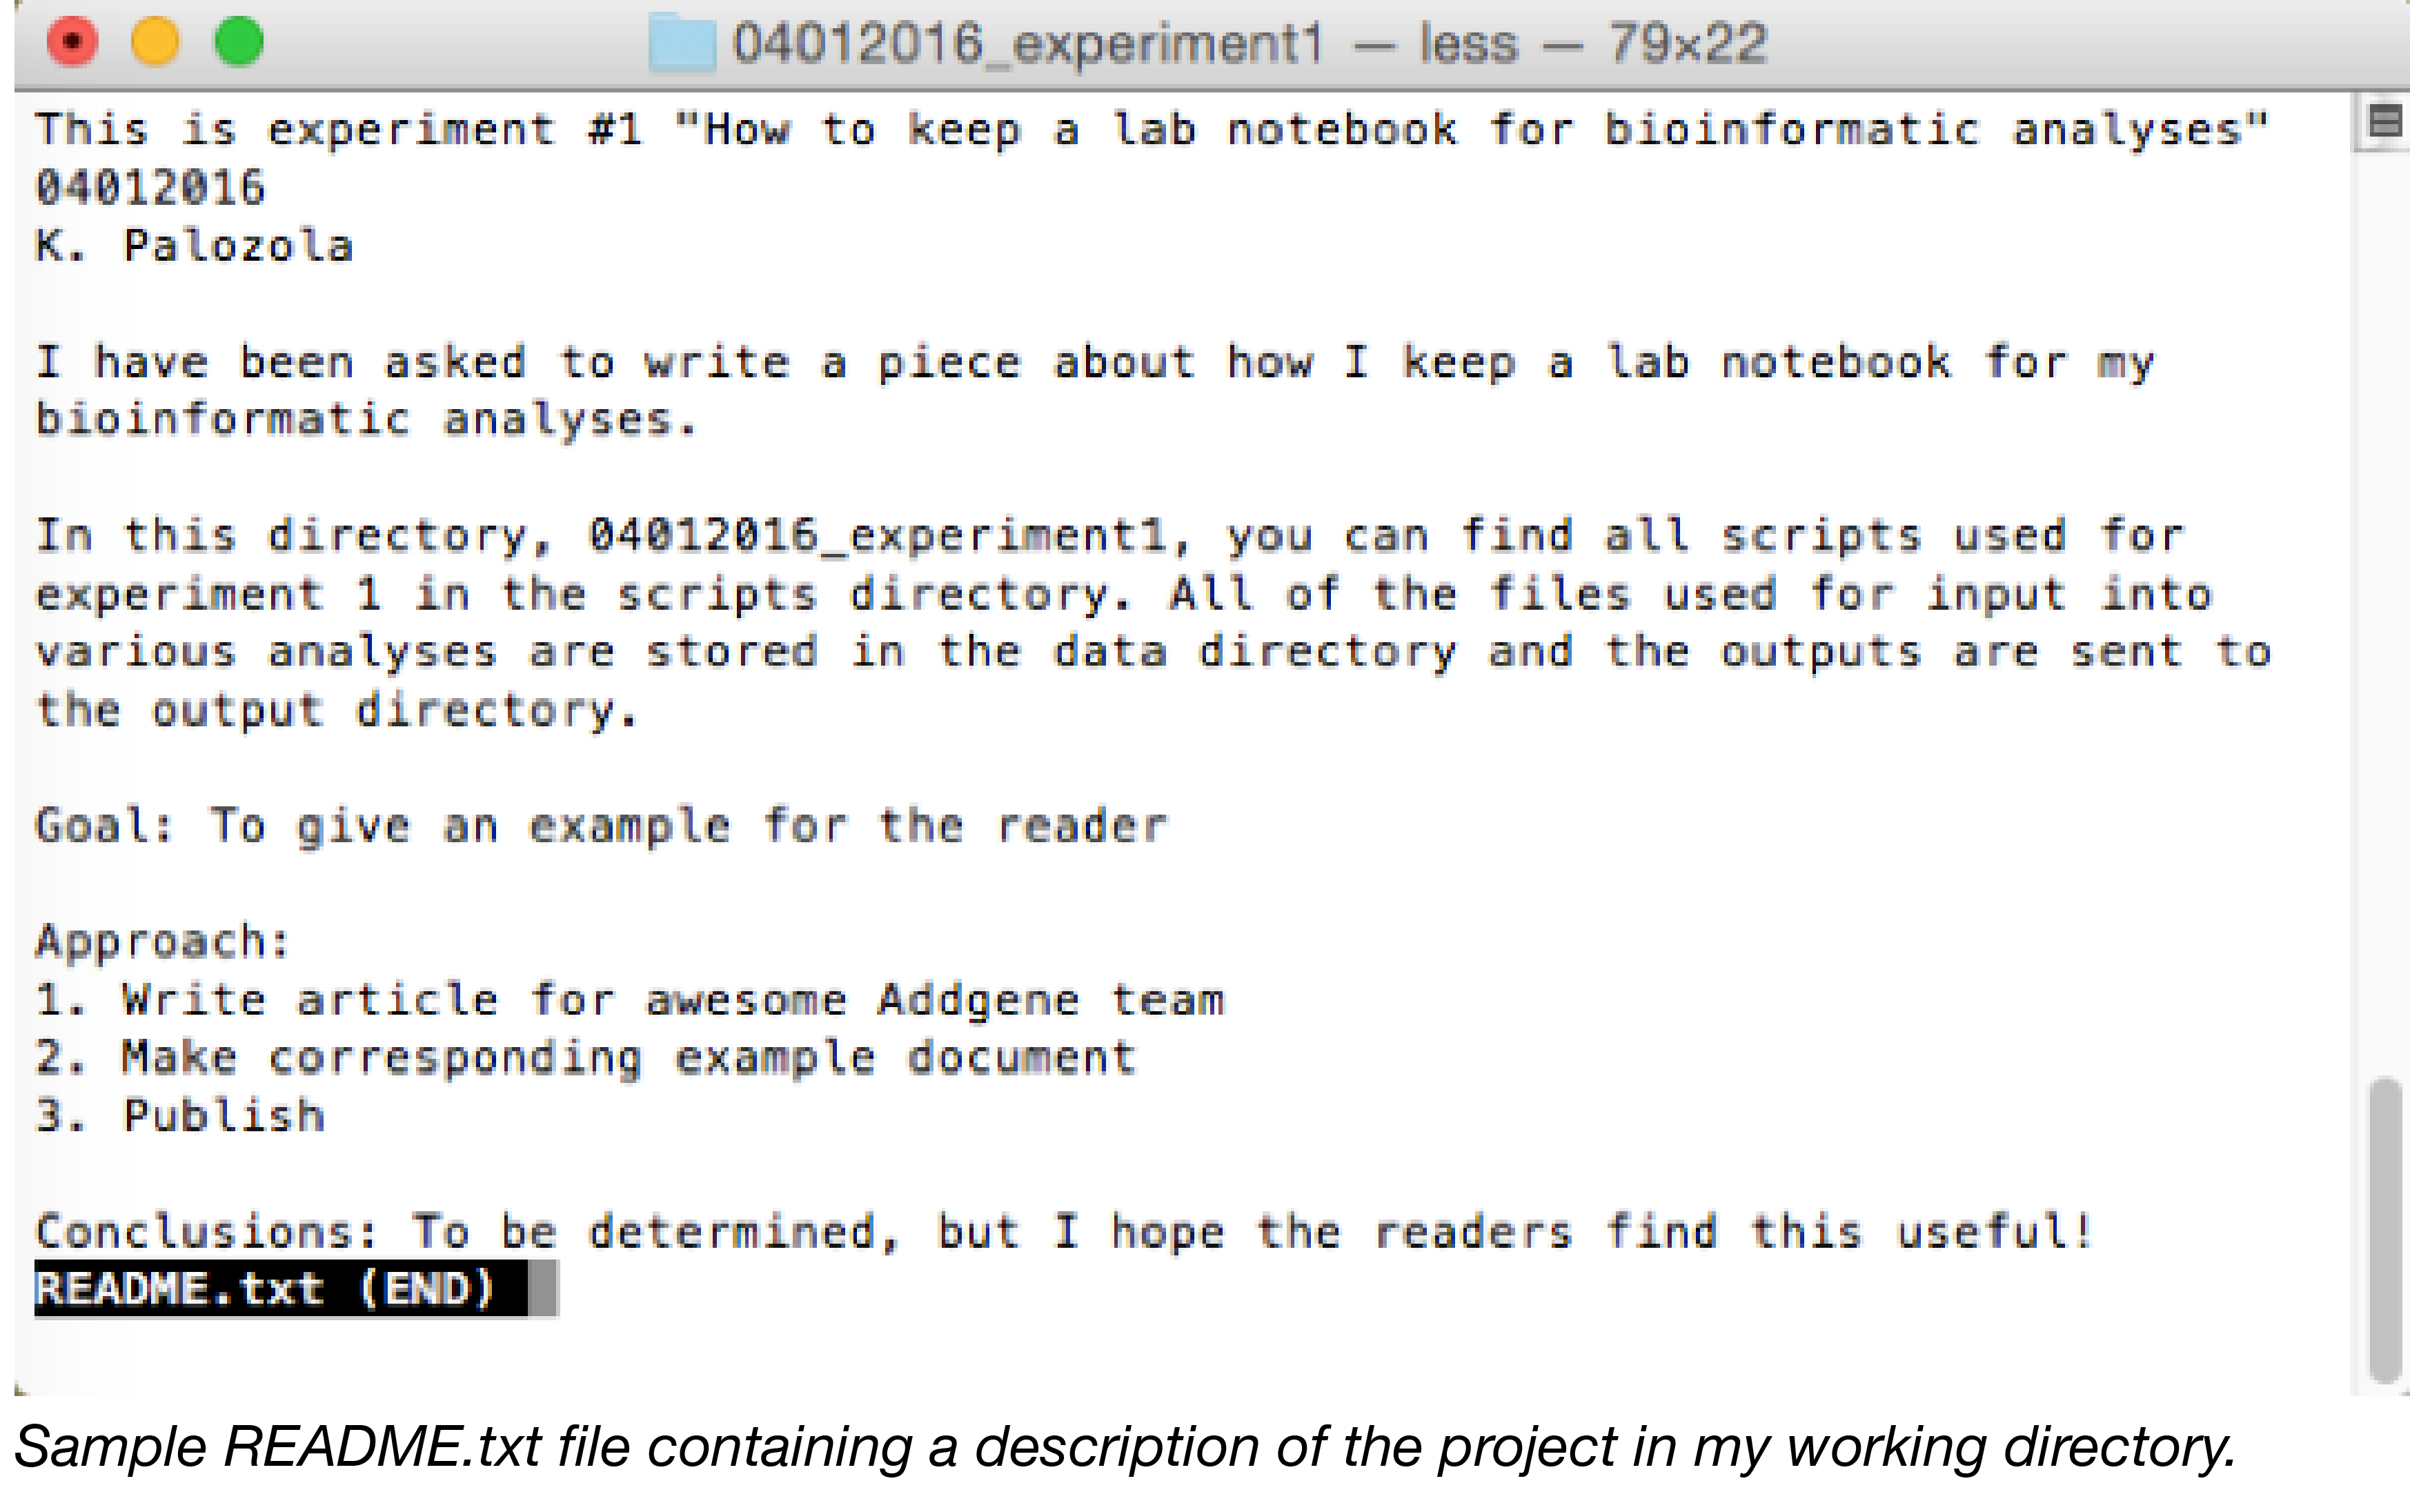 Sample read me text file